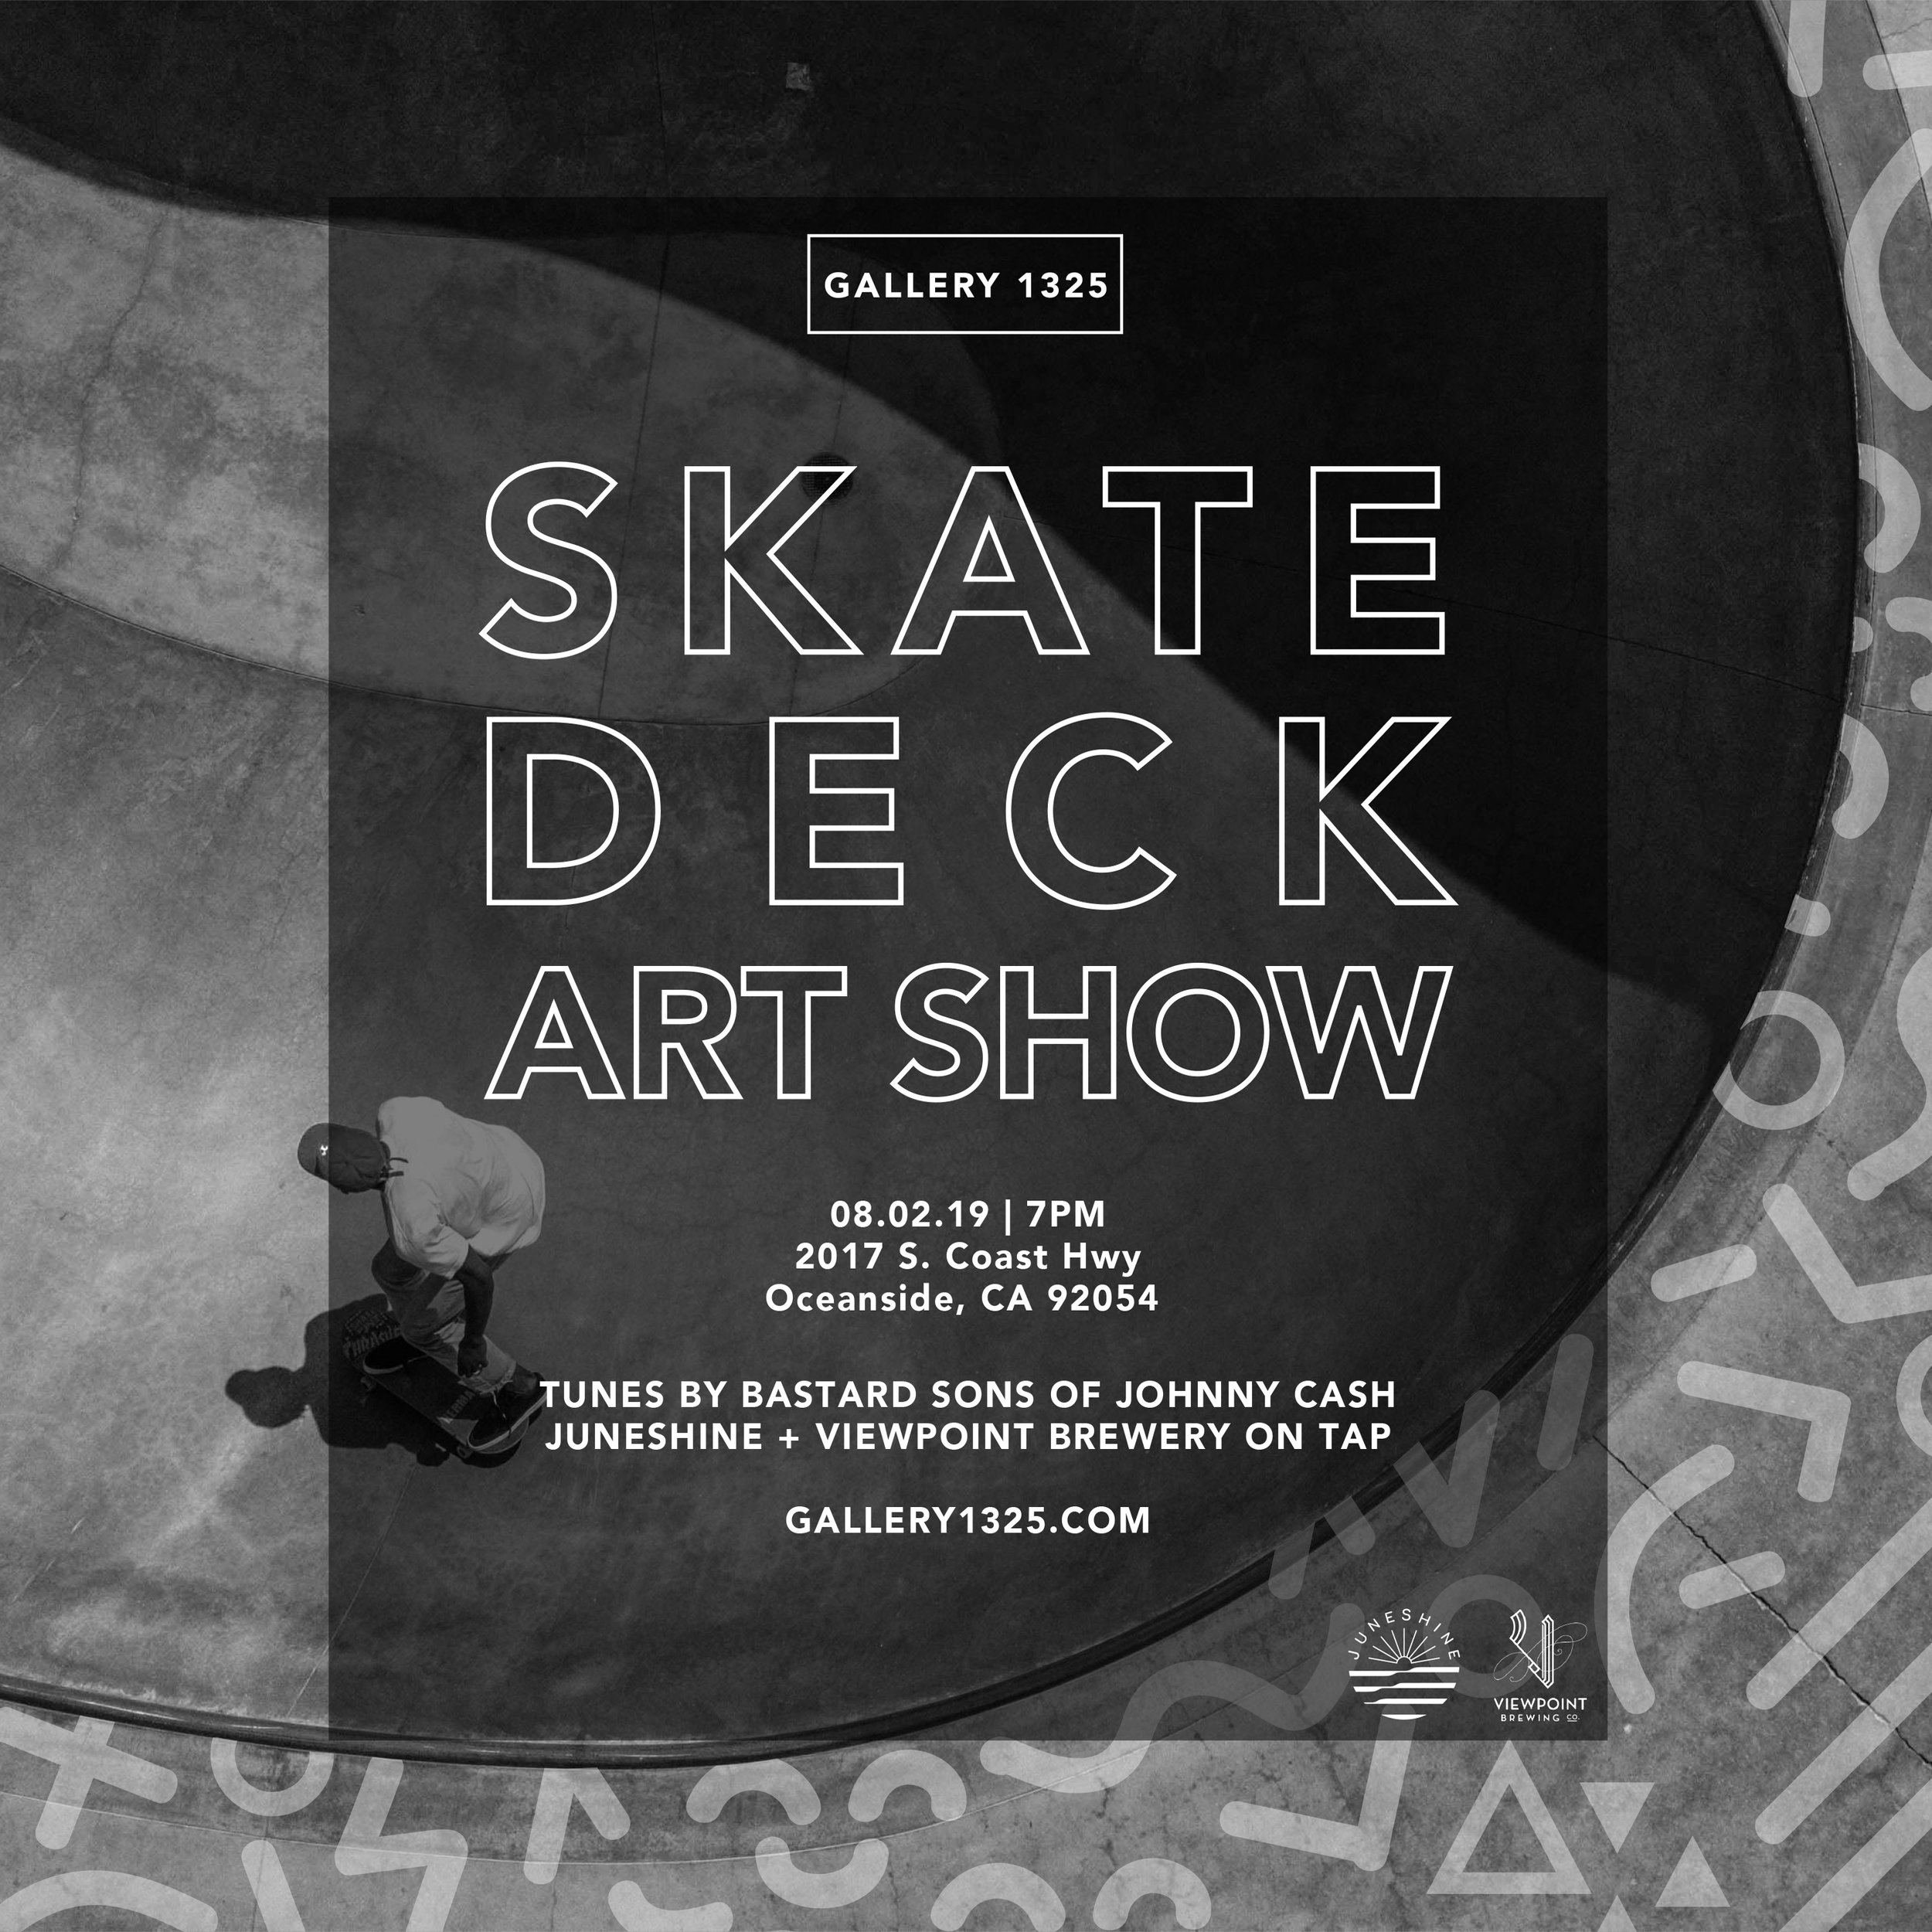 AUG 2019 SHOW - 08.02.19 | 7PMJoin us Friday, August 2nd from seven to eleven pm at GALLERY 1325 above the Moose Lodge in Oceanside for art, music, + philanthropy. We are having over 40+ artists creating one of a kind pieces on skate decks as a fundraiser to support the arts.